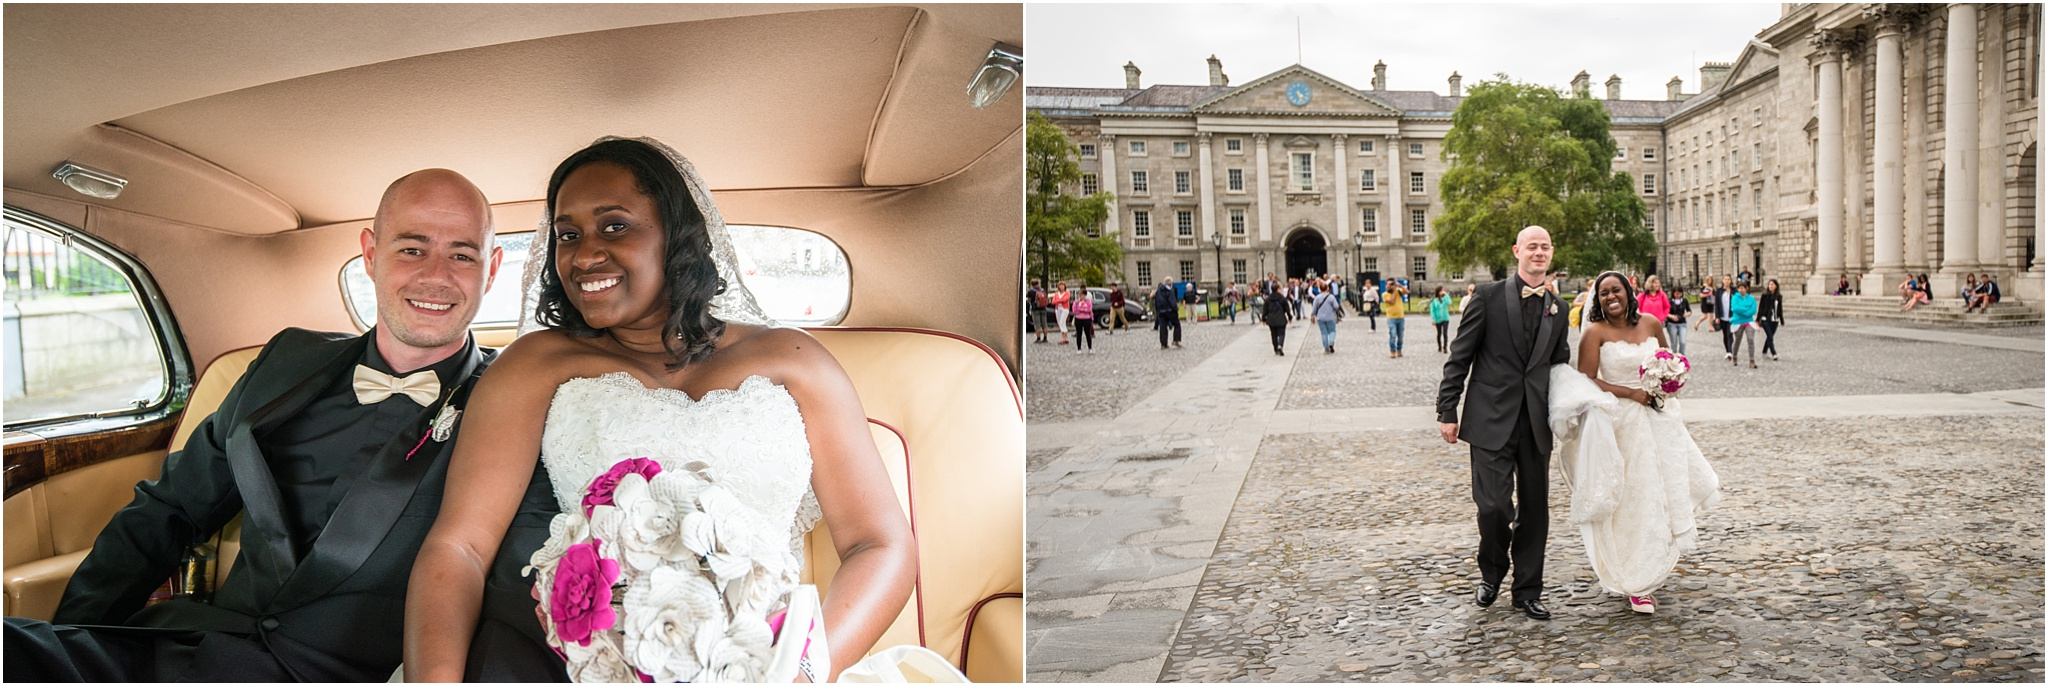 Greg Smit Photography Dublin Ireland wedding photographer Thomas Prior Hall 19